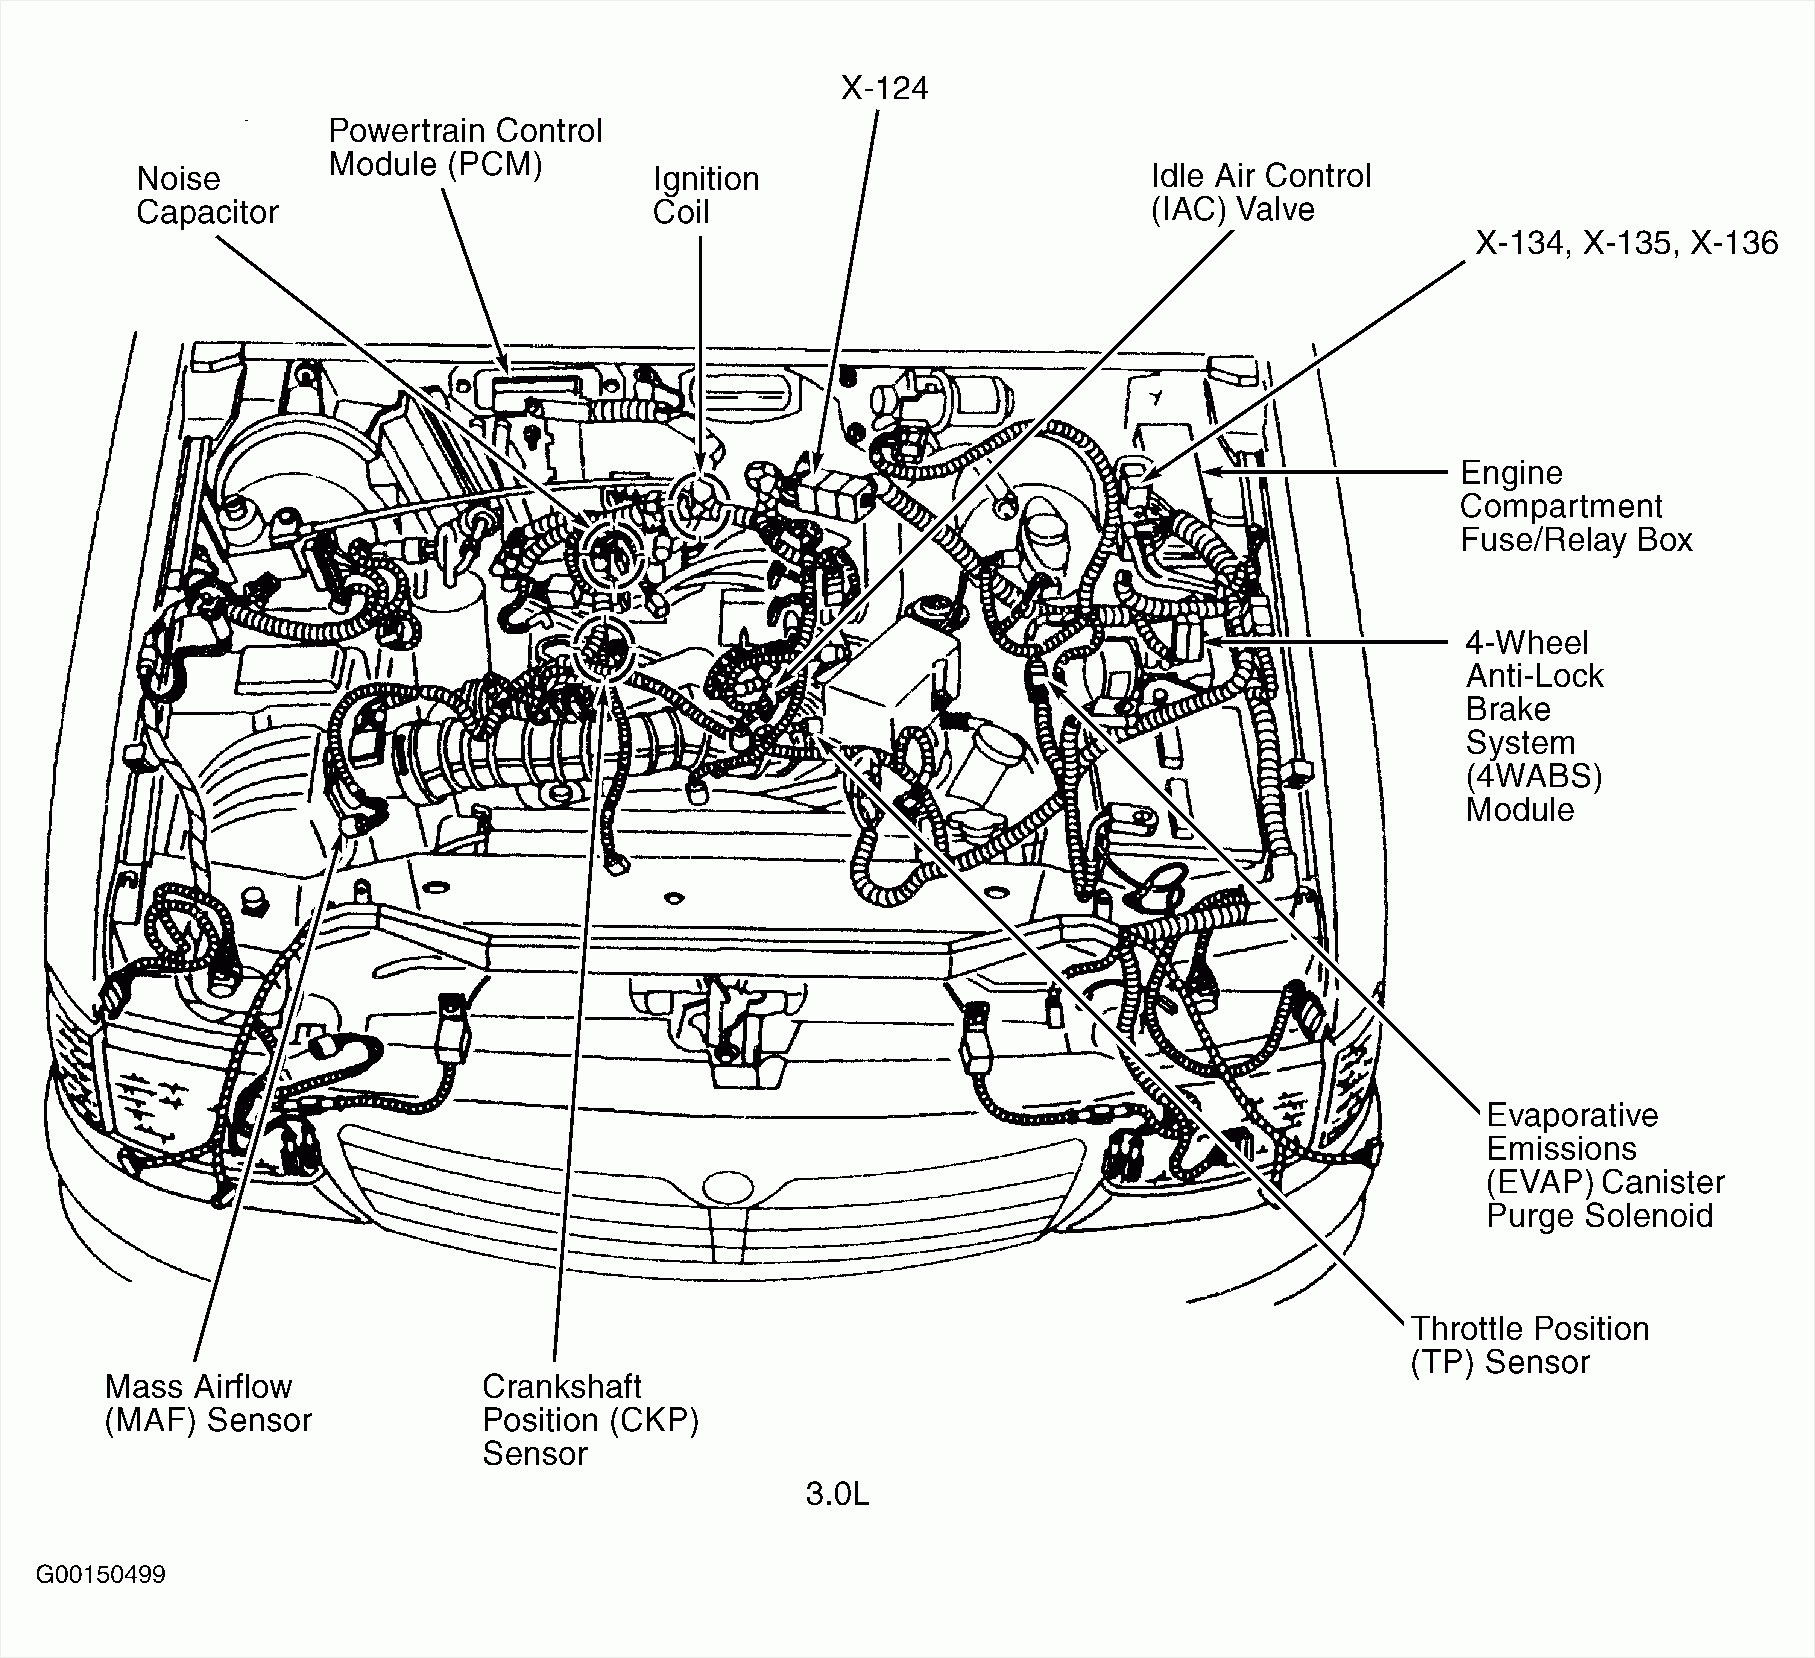 2004 buick lesabre engine diagram instance wiring diagram event eventimusicaema it